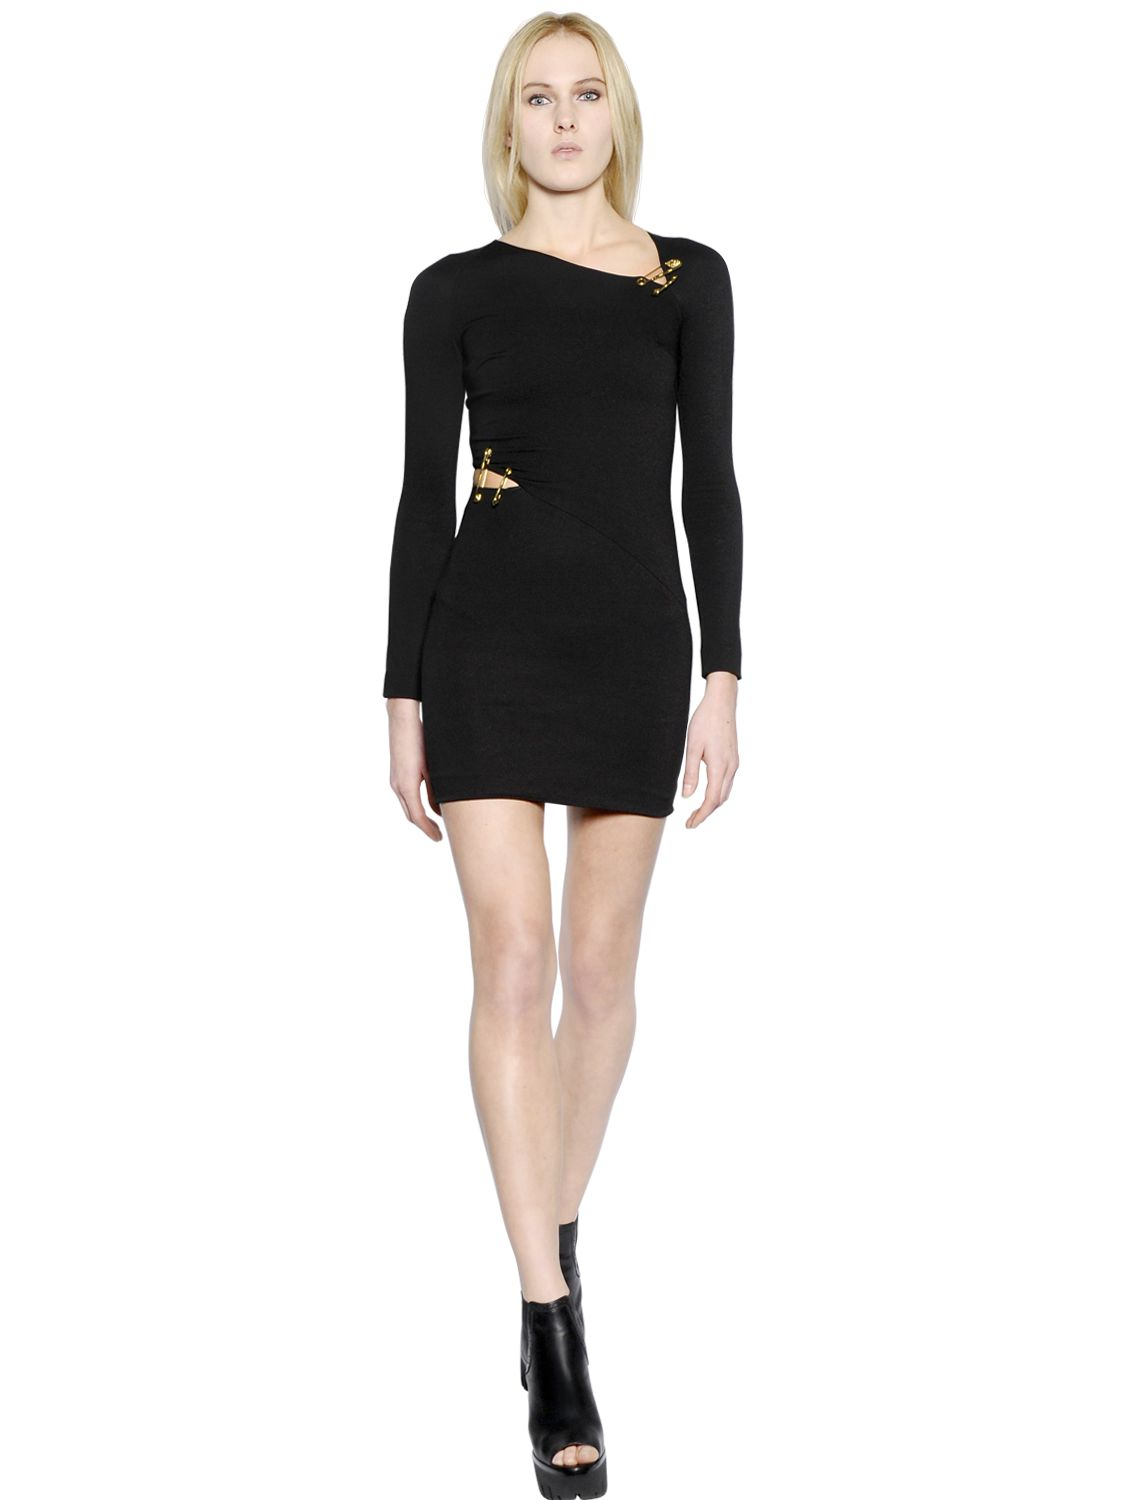 side-slit safety-pin dress - Black Versus Under 70 Dollars Fake For Sale Sale Discount Free Shipping Professional oa5y9rZb